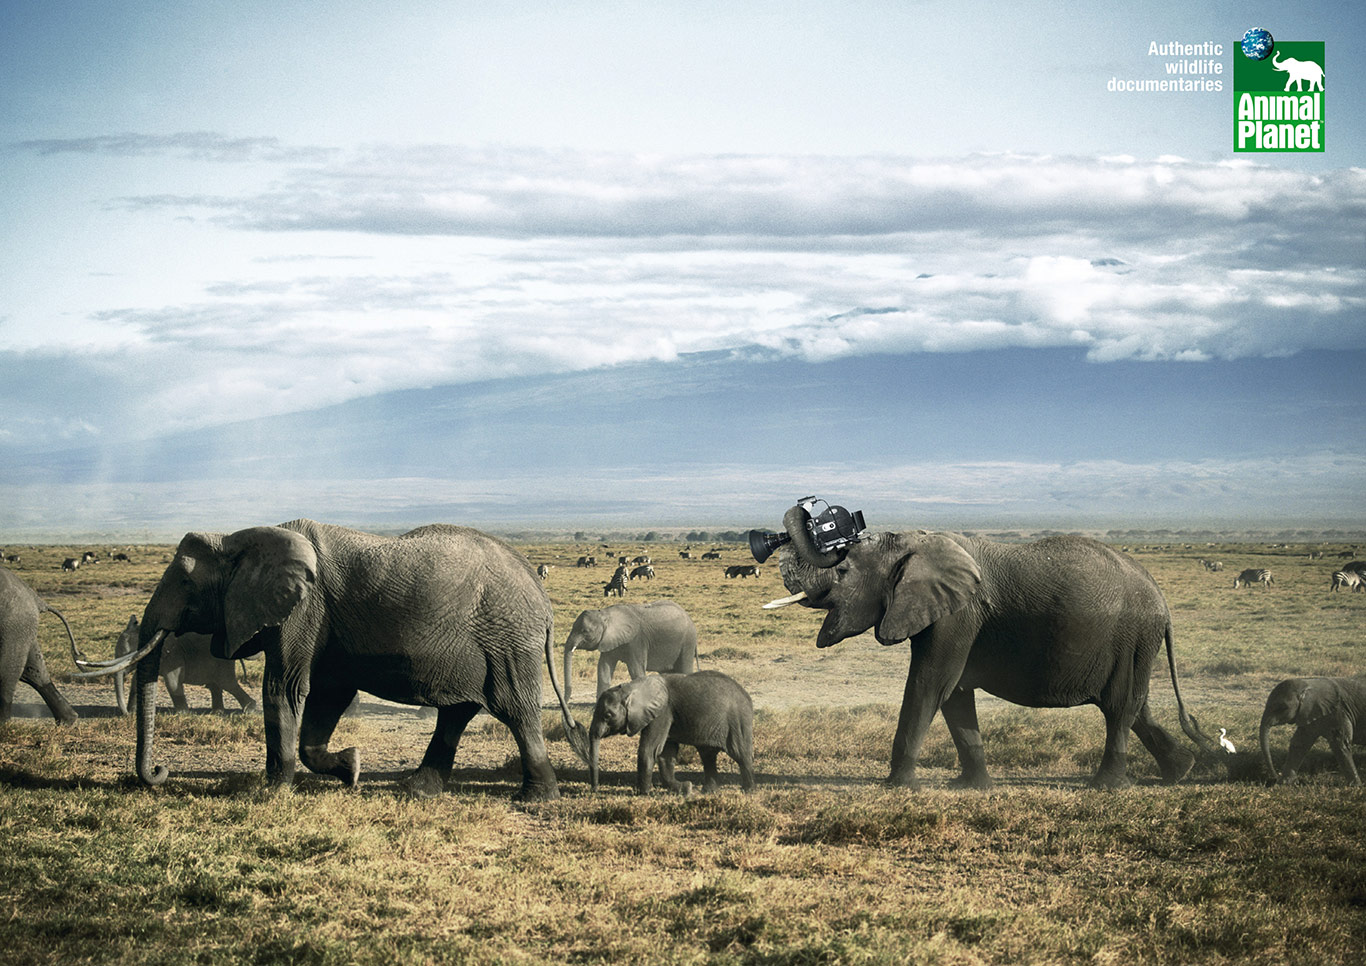 4-Animal-Planet-Cameramanimals-Elephant